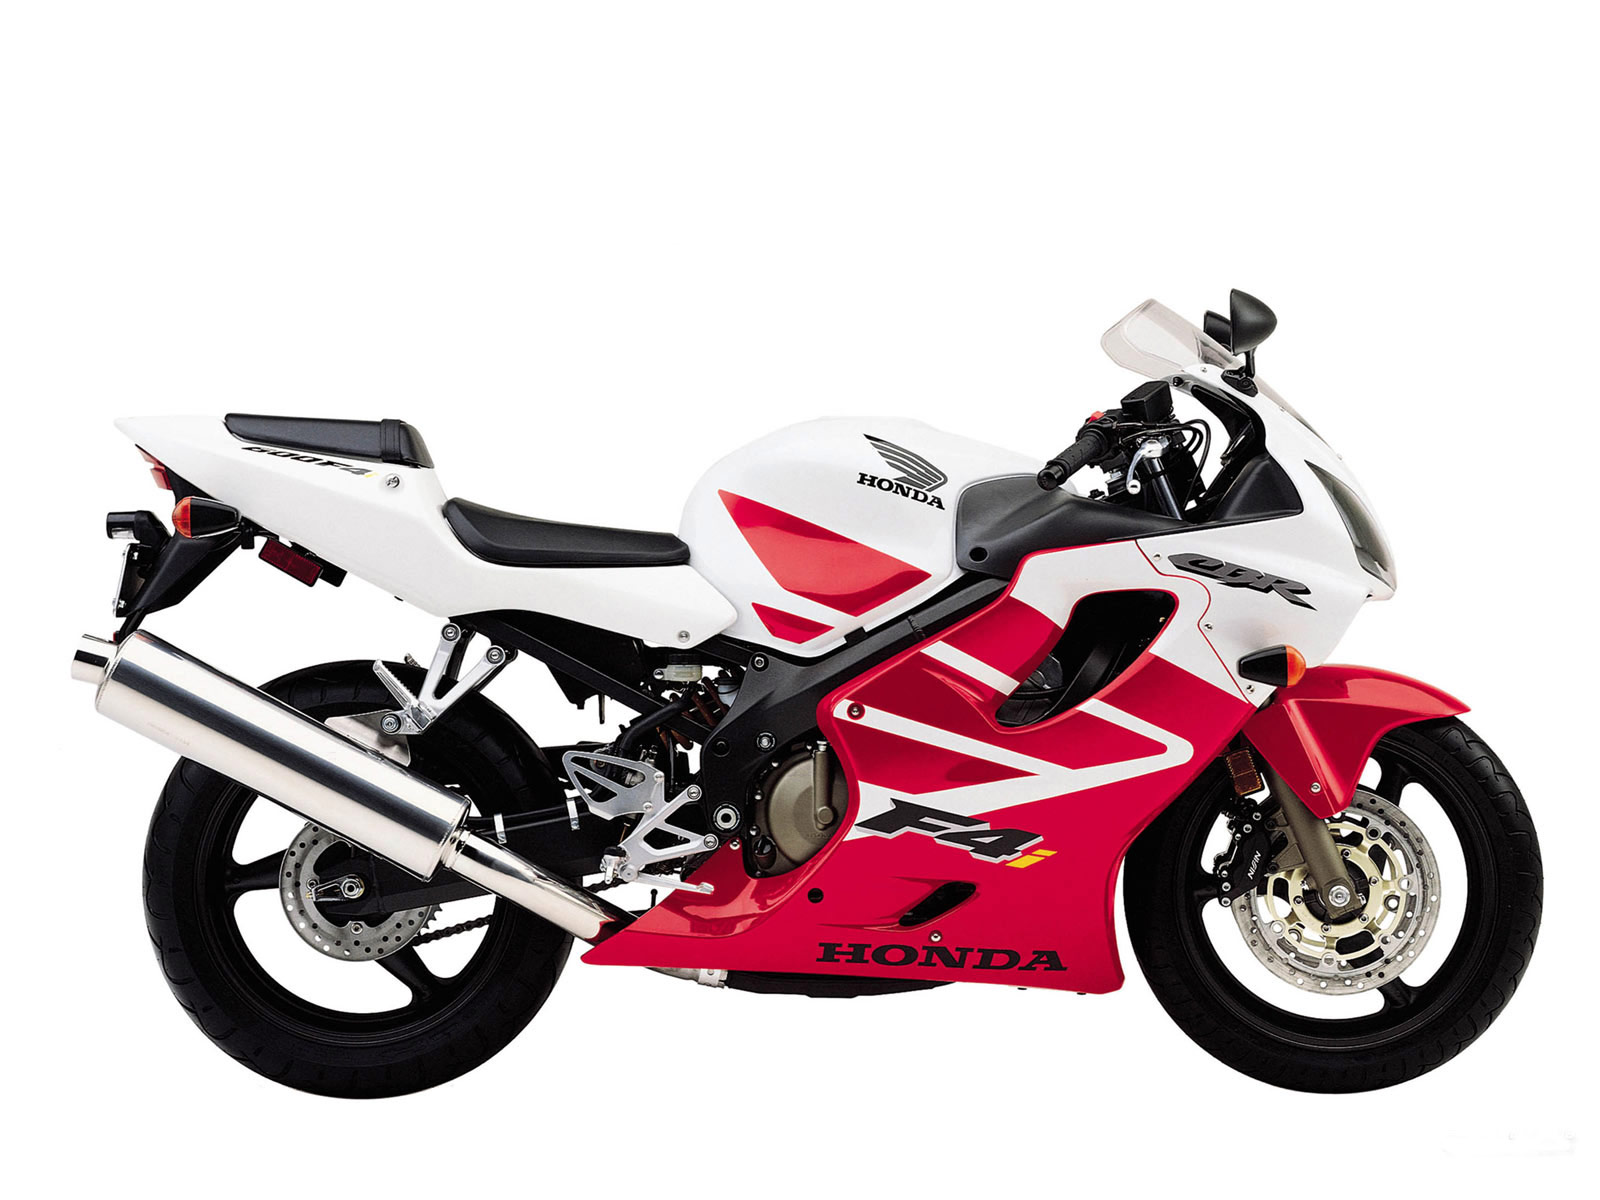 HONDA CBR600F4i motorcycle accident lawyers Where can you find an engine  diagram for a 2001 Honda CBR 600?. Making the world better, one answer at a  time.